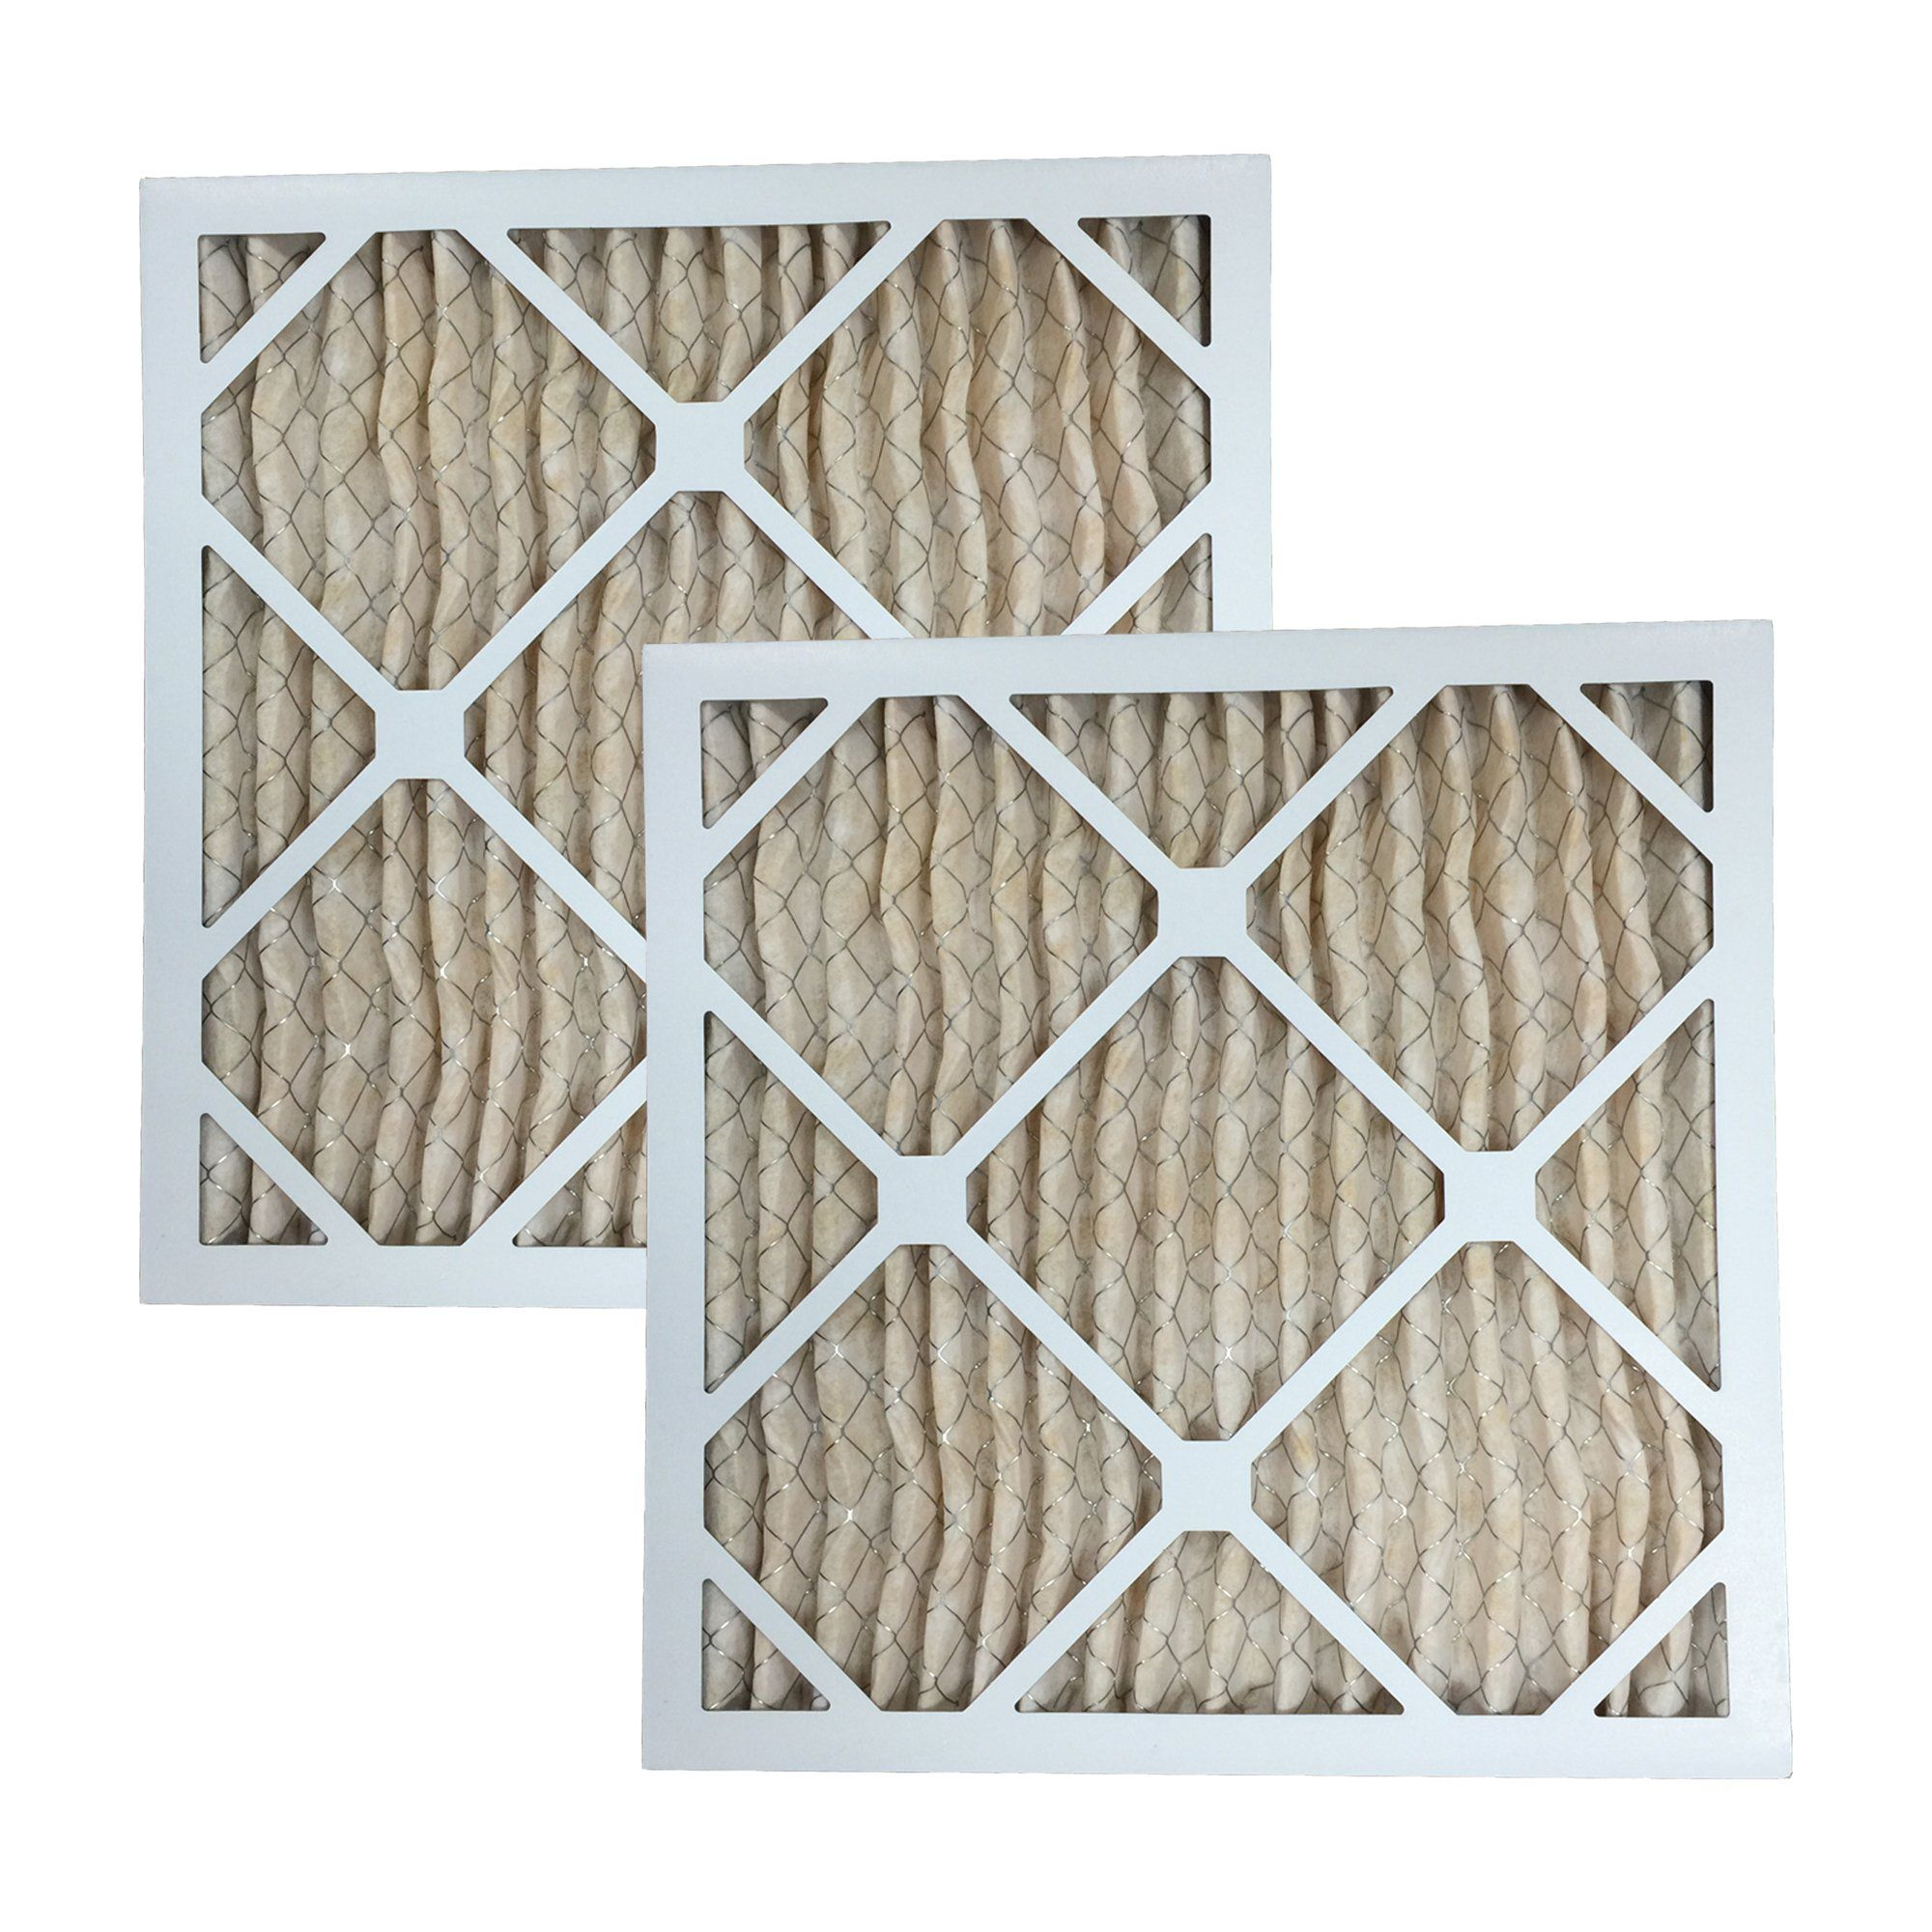 14x14x1 MERV11 Air Furnace Filter Furnace filters